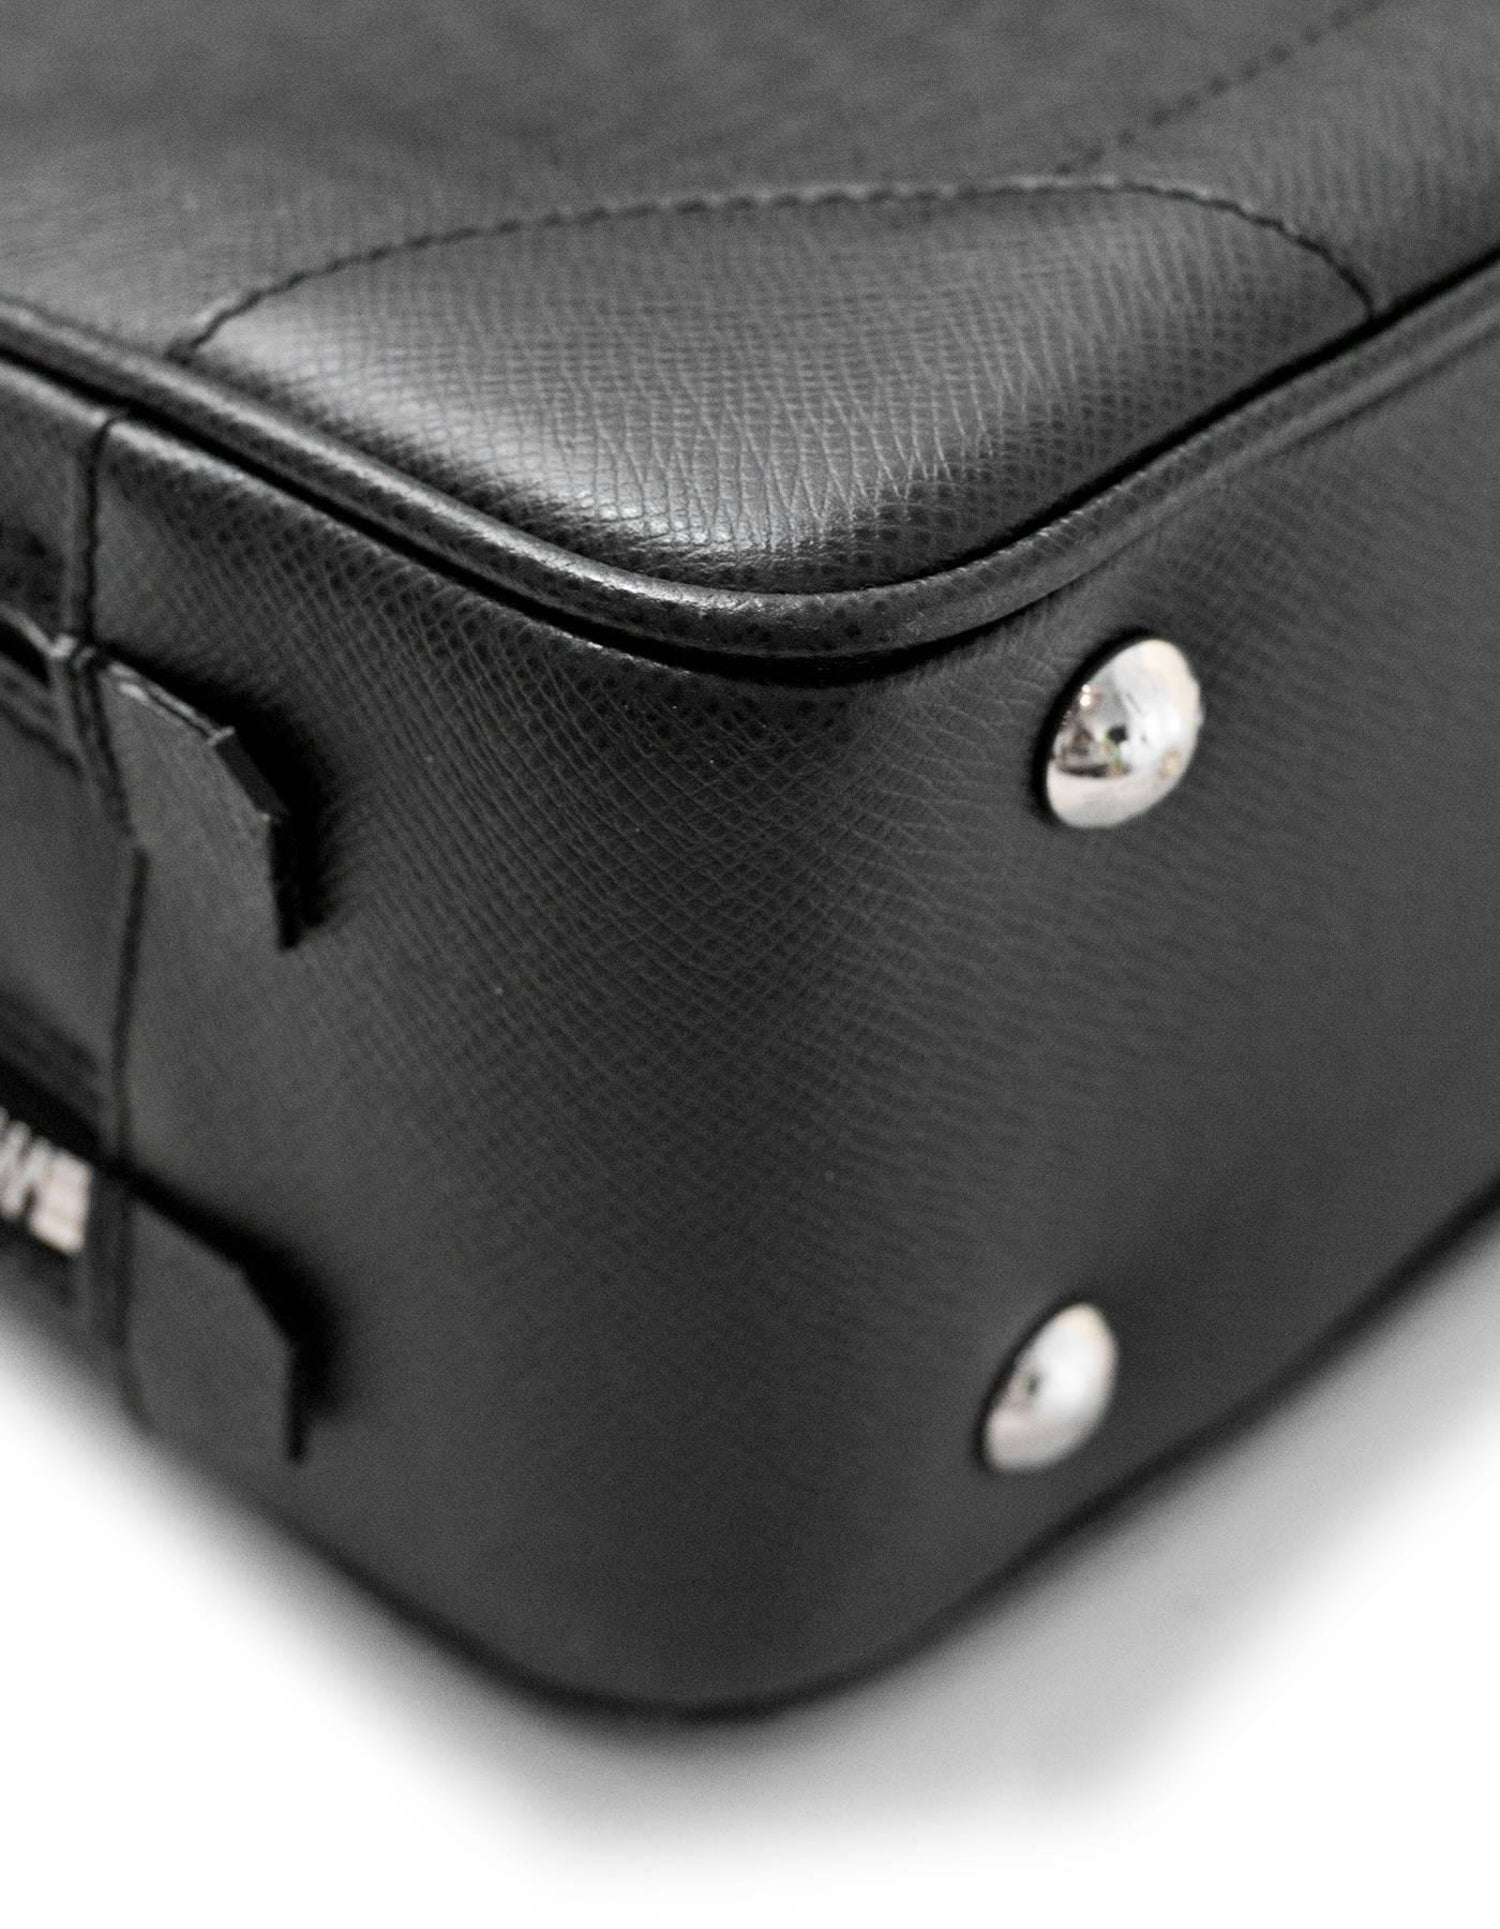 Louis Vuitton Black Taiga Leather Briefcase Laptop Computer Bag For Sale at  1stdibs 06abf26b1c6c8